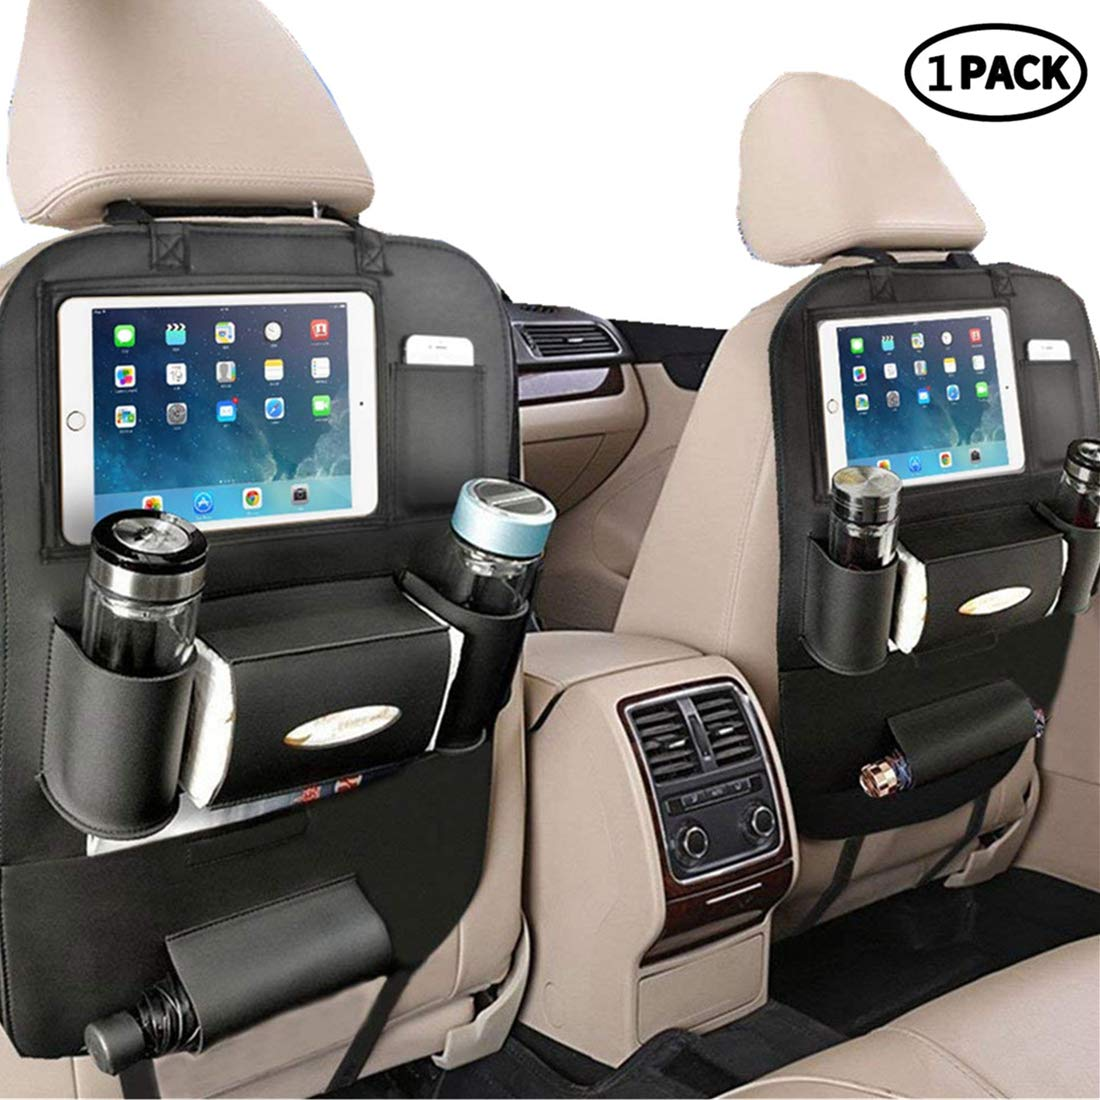 [Upgraded] Pu Leather Car Back Seat Organizer and iPad Holder, Universal Use as Car Backseat Organizer for Kids, Storage Bottles, Tissue Box, Toys(1 Pack, Black) by PALMOO